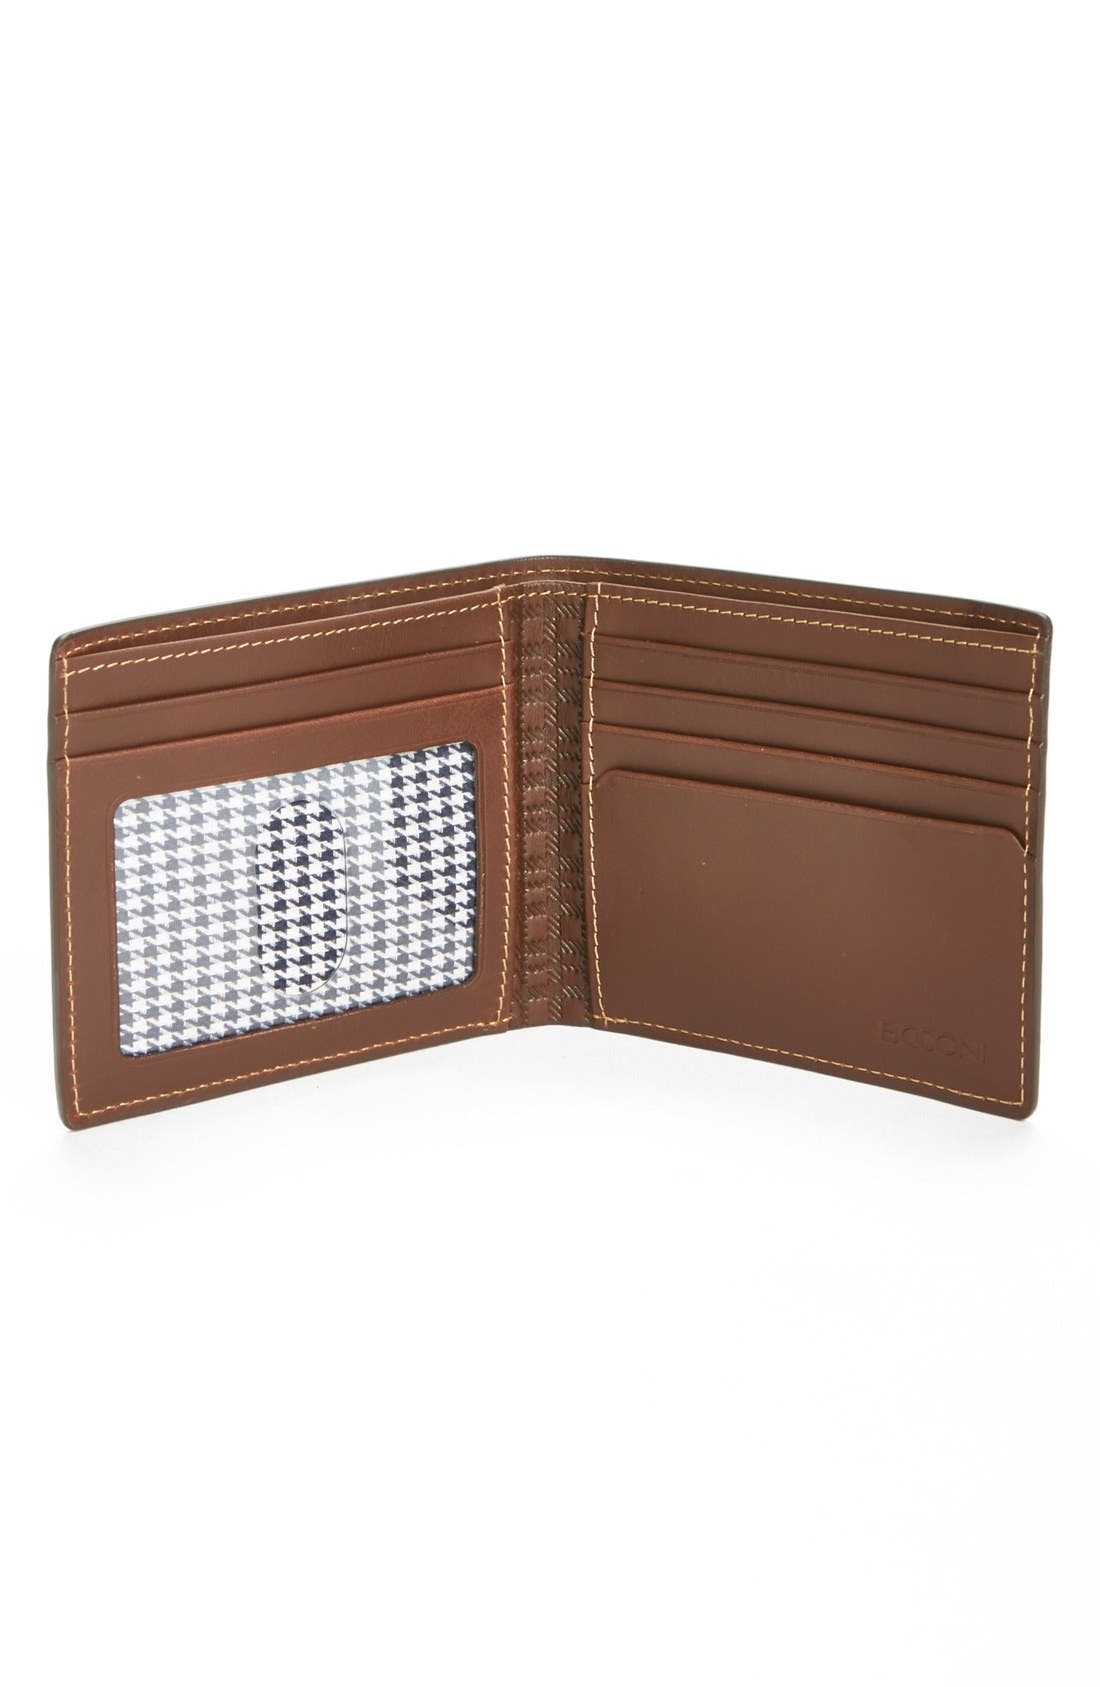 'Bryant' RFID Blocker Slimfold Wallet,                             Alternate thumbnail 6, color,                             ANTIQUE MAHOGANY